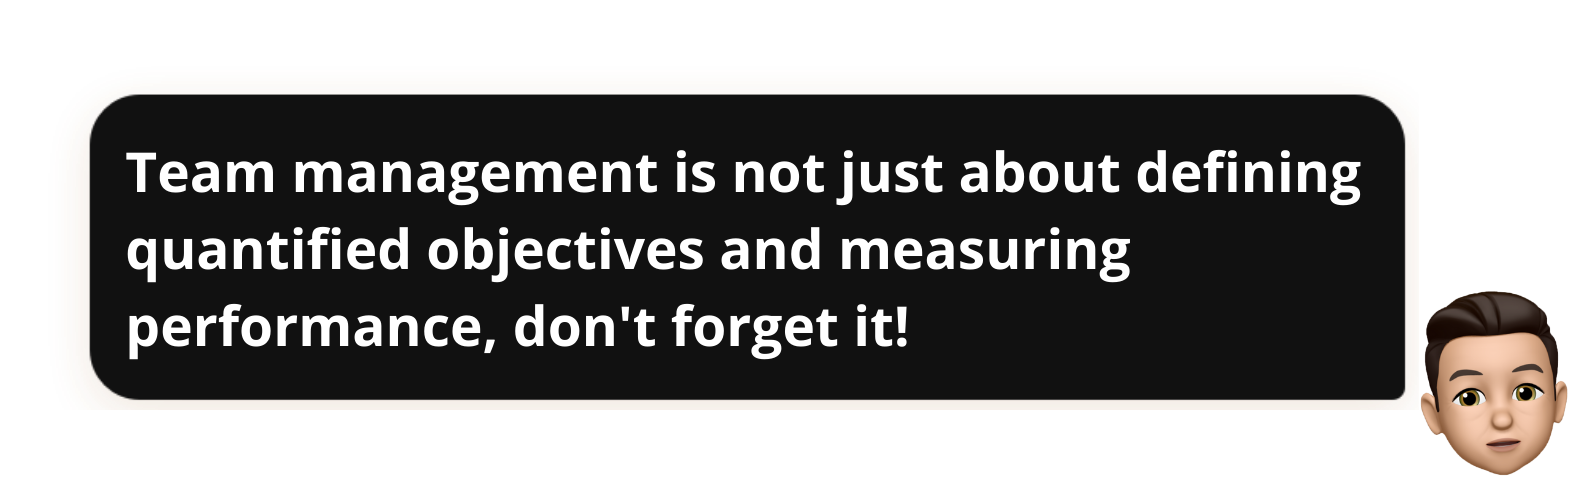 """Quentin Demeestère memoji saying : """"Team management is not just about defining quantified objectives and measuring performance, don't forget it!"""""""